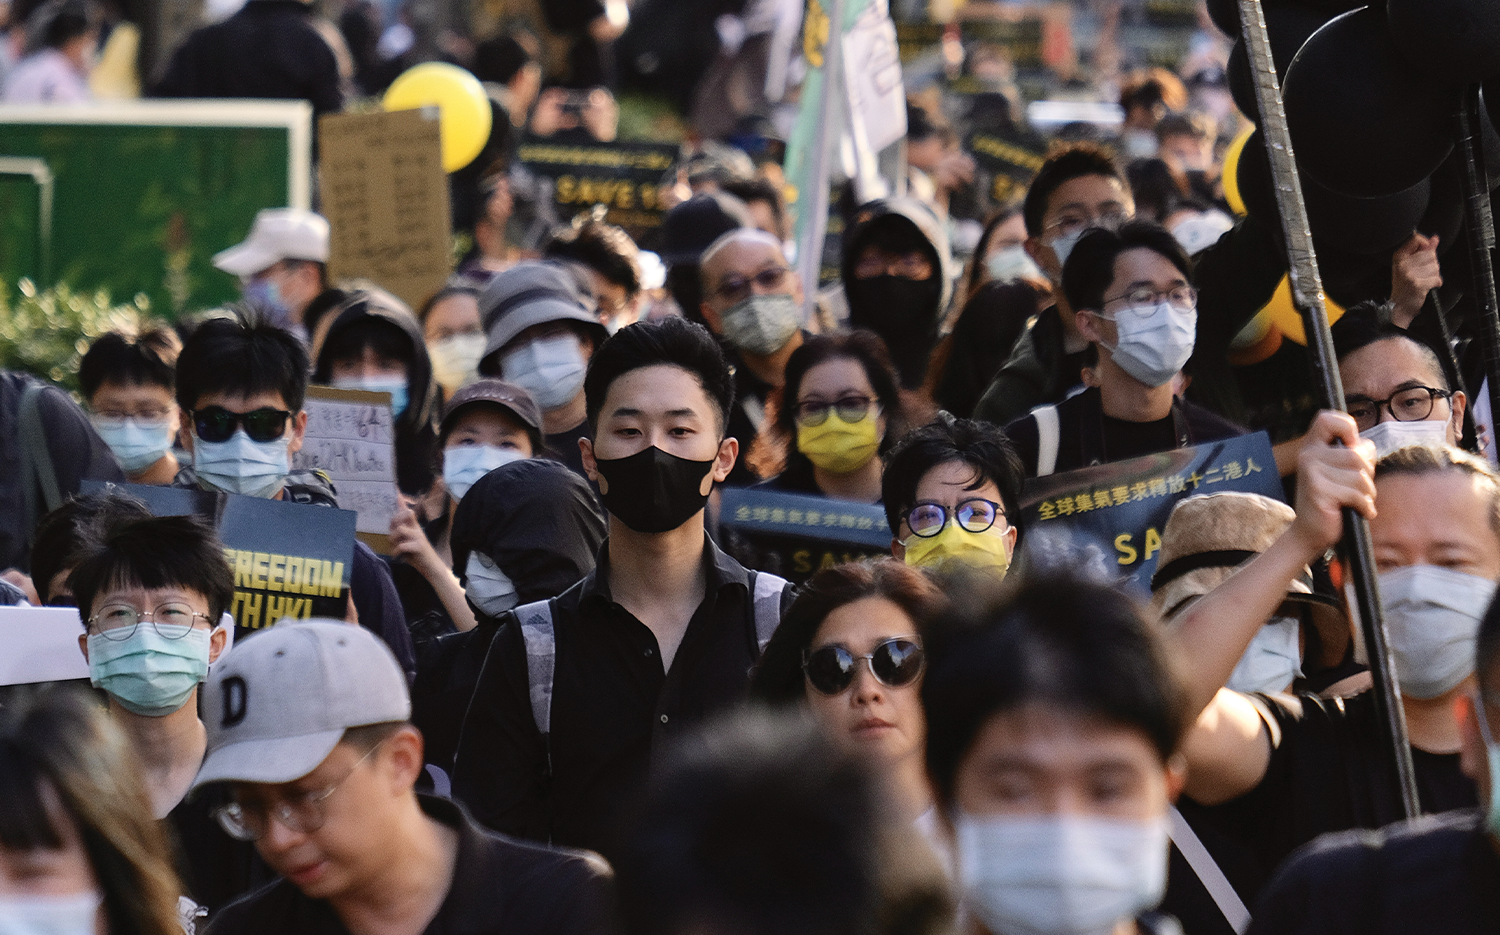 Demonstrators in Taipei gather to protest China's detention of Hong Kongers.